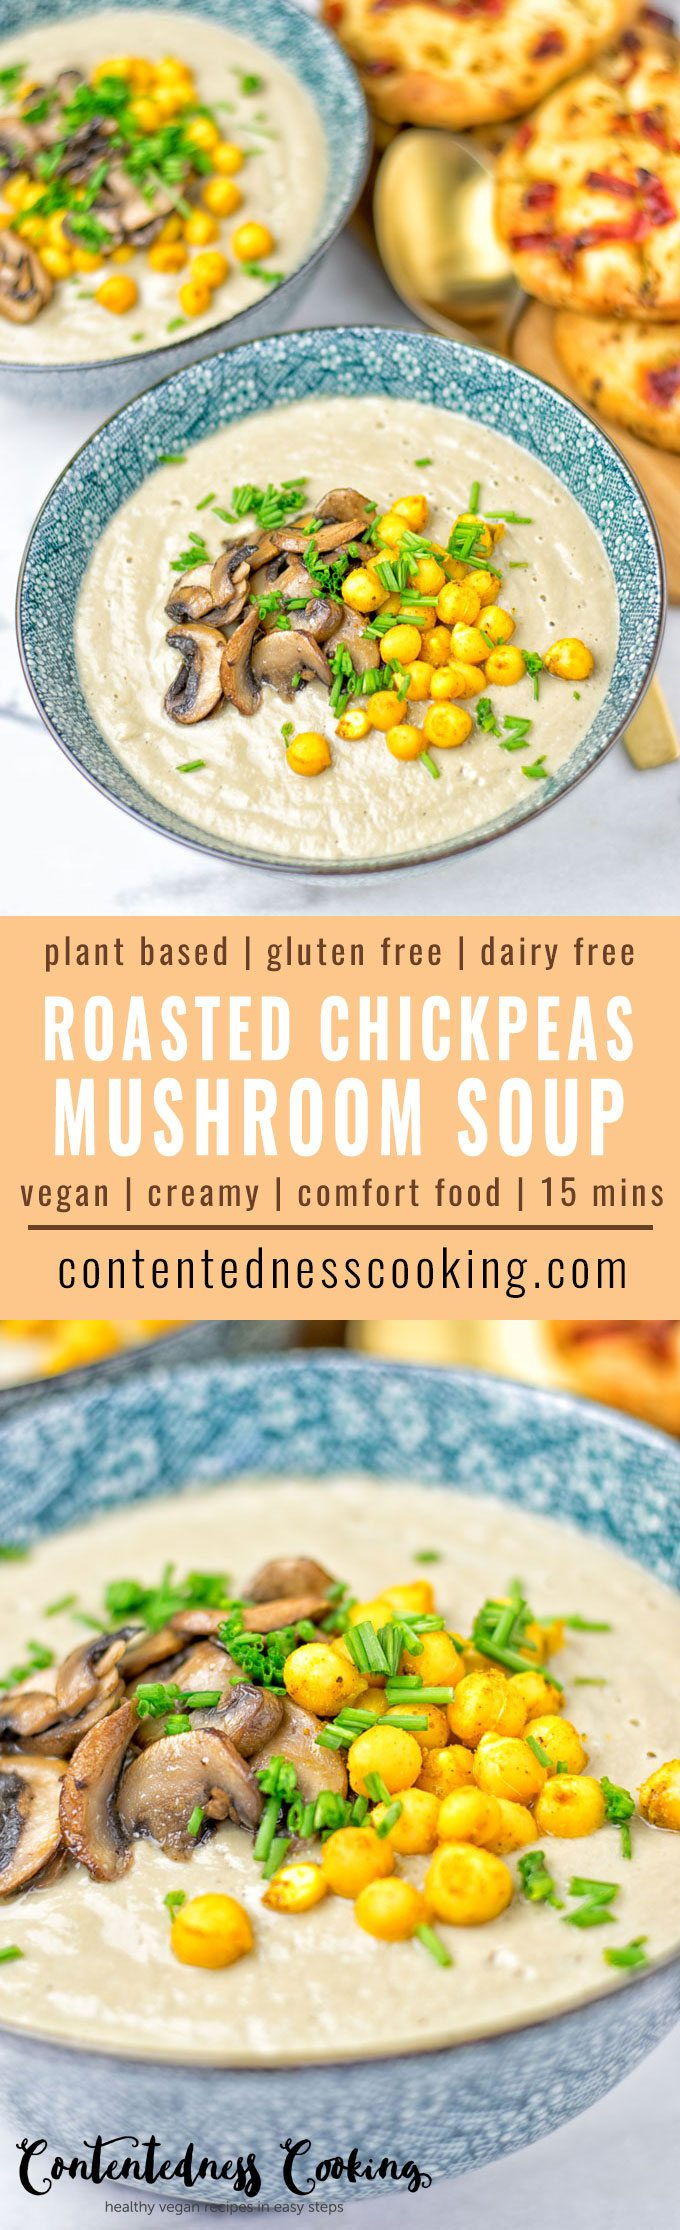 Roasted Chickpeas Cream of Mushroom Soup | #vegan #glutenfree #contentednesscooking #dairyfree #plantbased